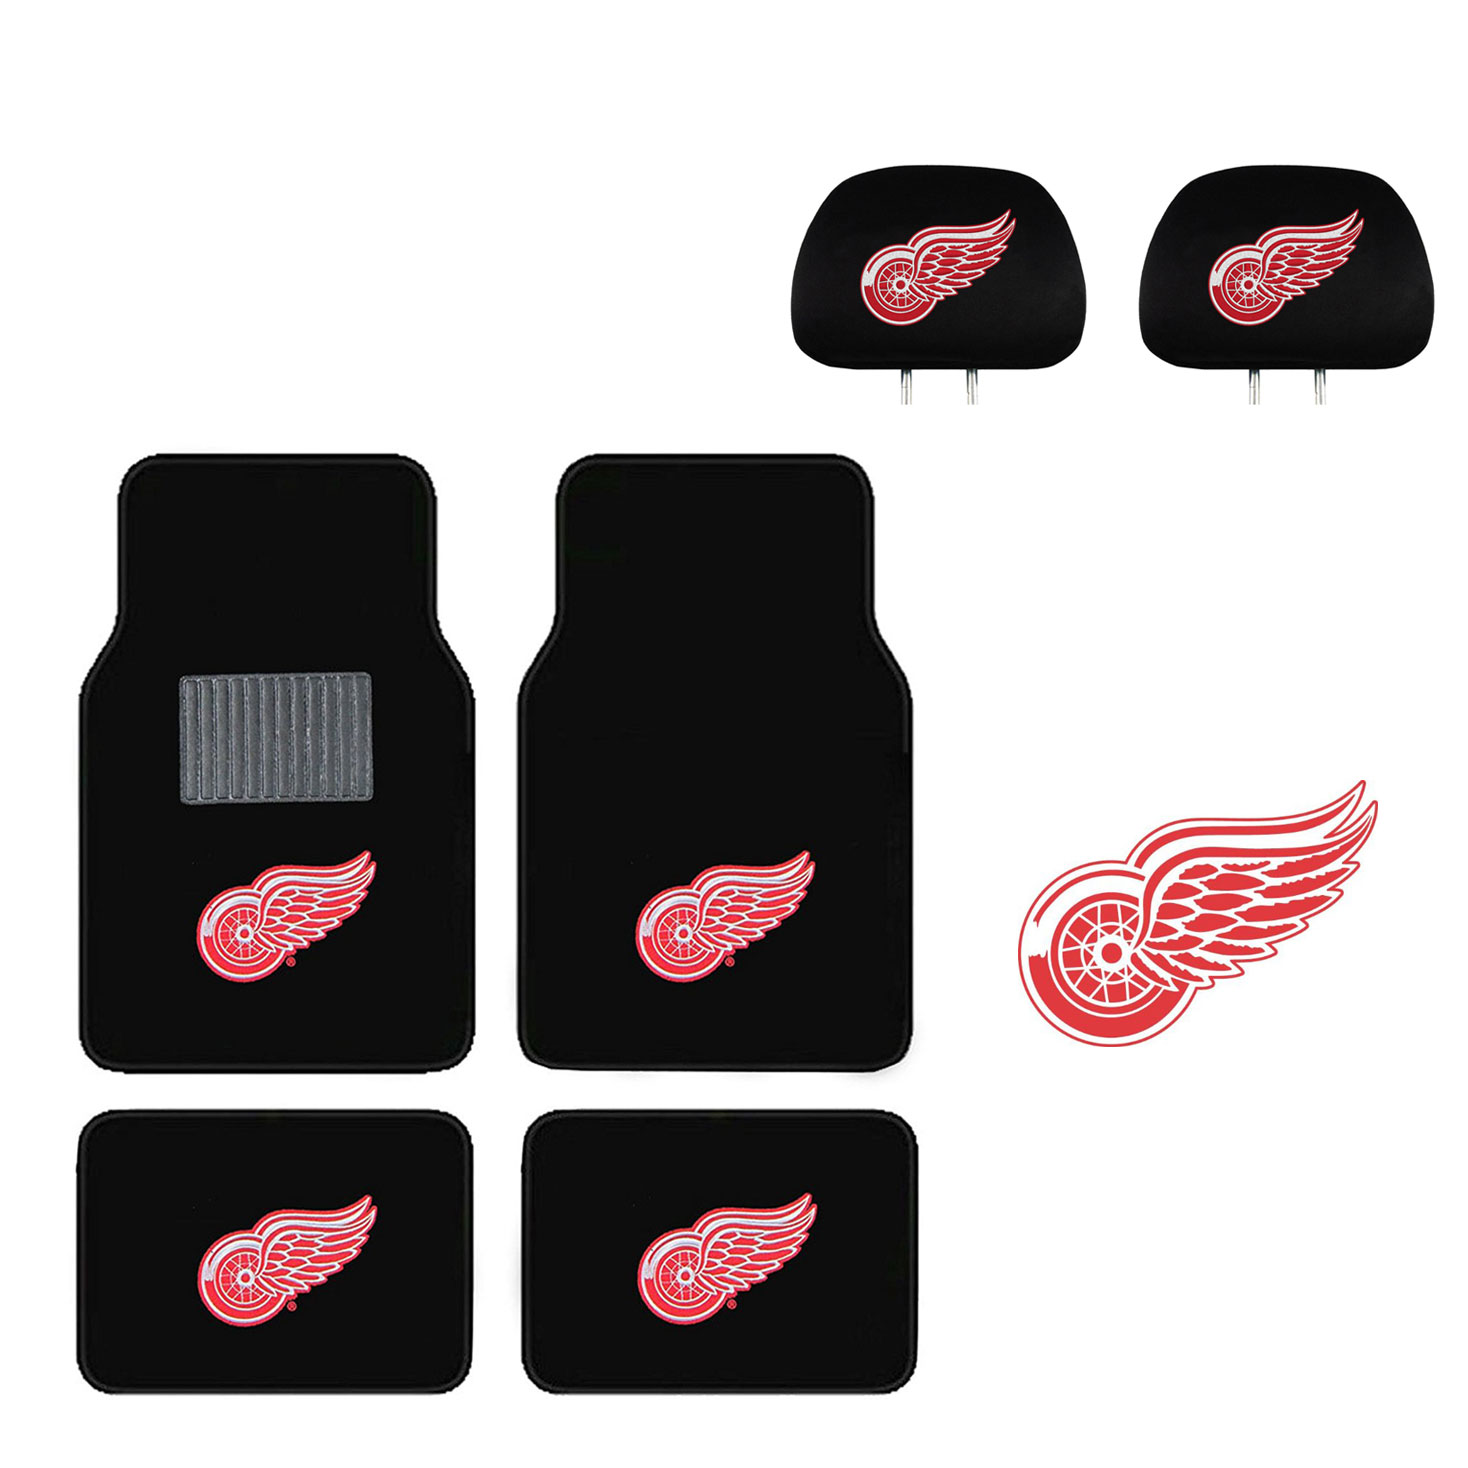 Detroit Redwings 4 Pc Carpet Floor Mats And Head Rest Cover With Color Decal